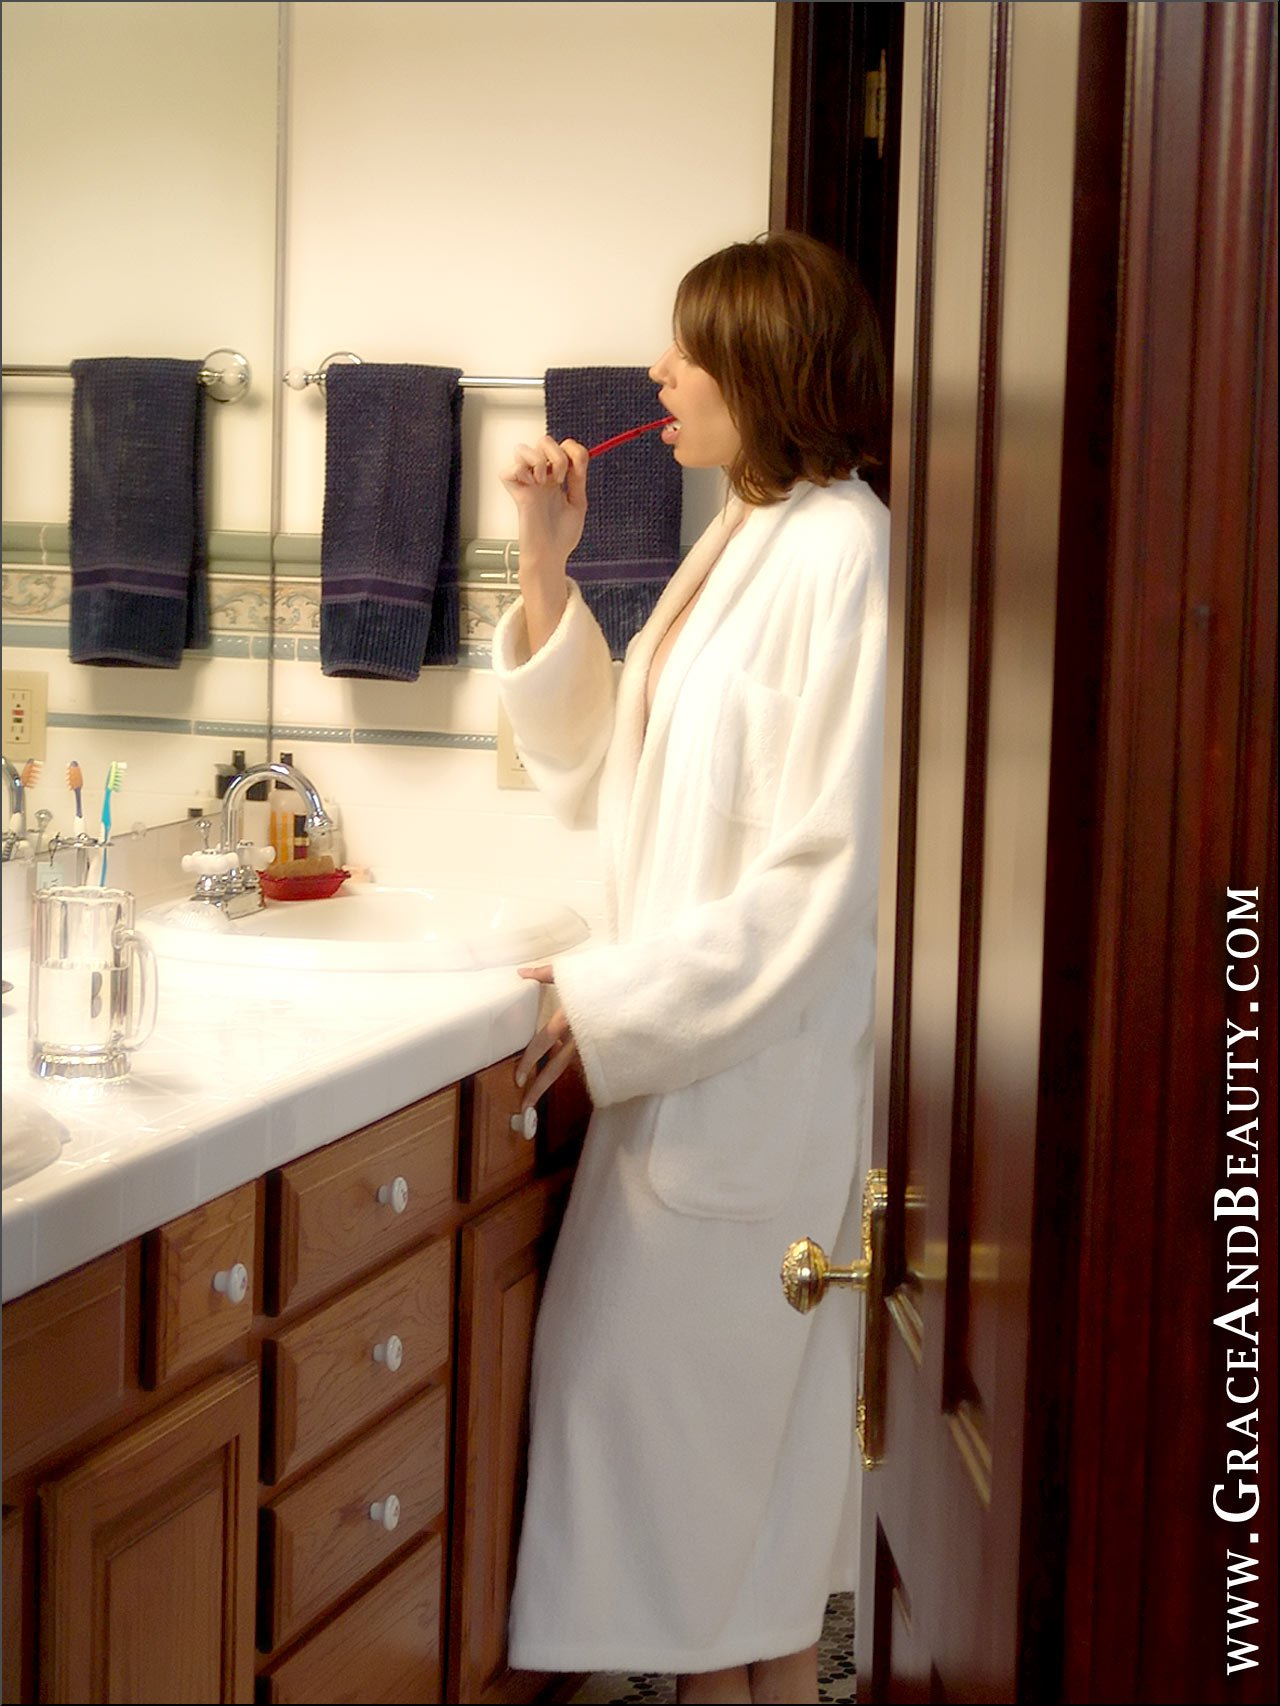 Lara, brunette, strip, nude, robe, toothbrush, uggs